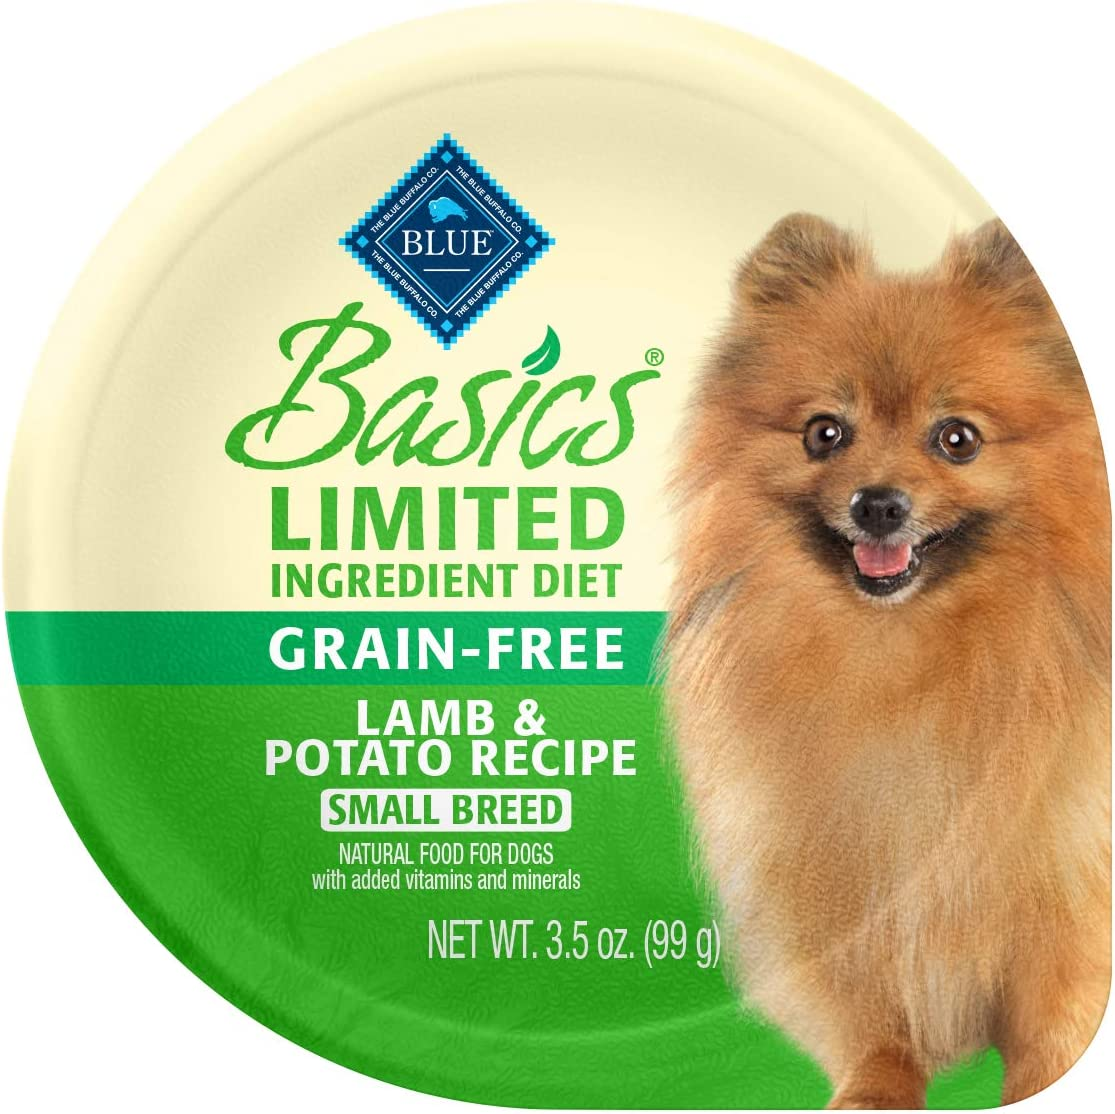 Blue Buffalo Basics Limited Ingredient Max 50% OFF Adult Natural Small Minneapolis Mall Diet